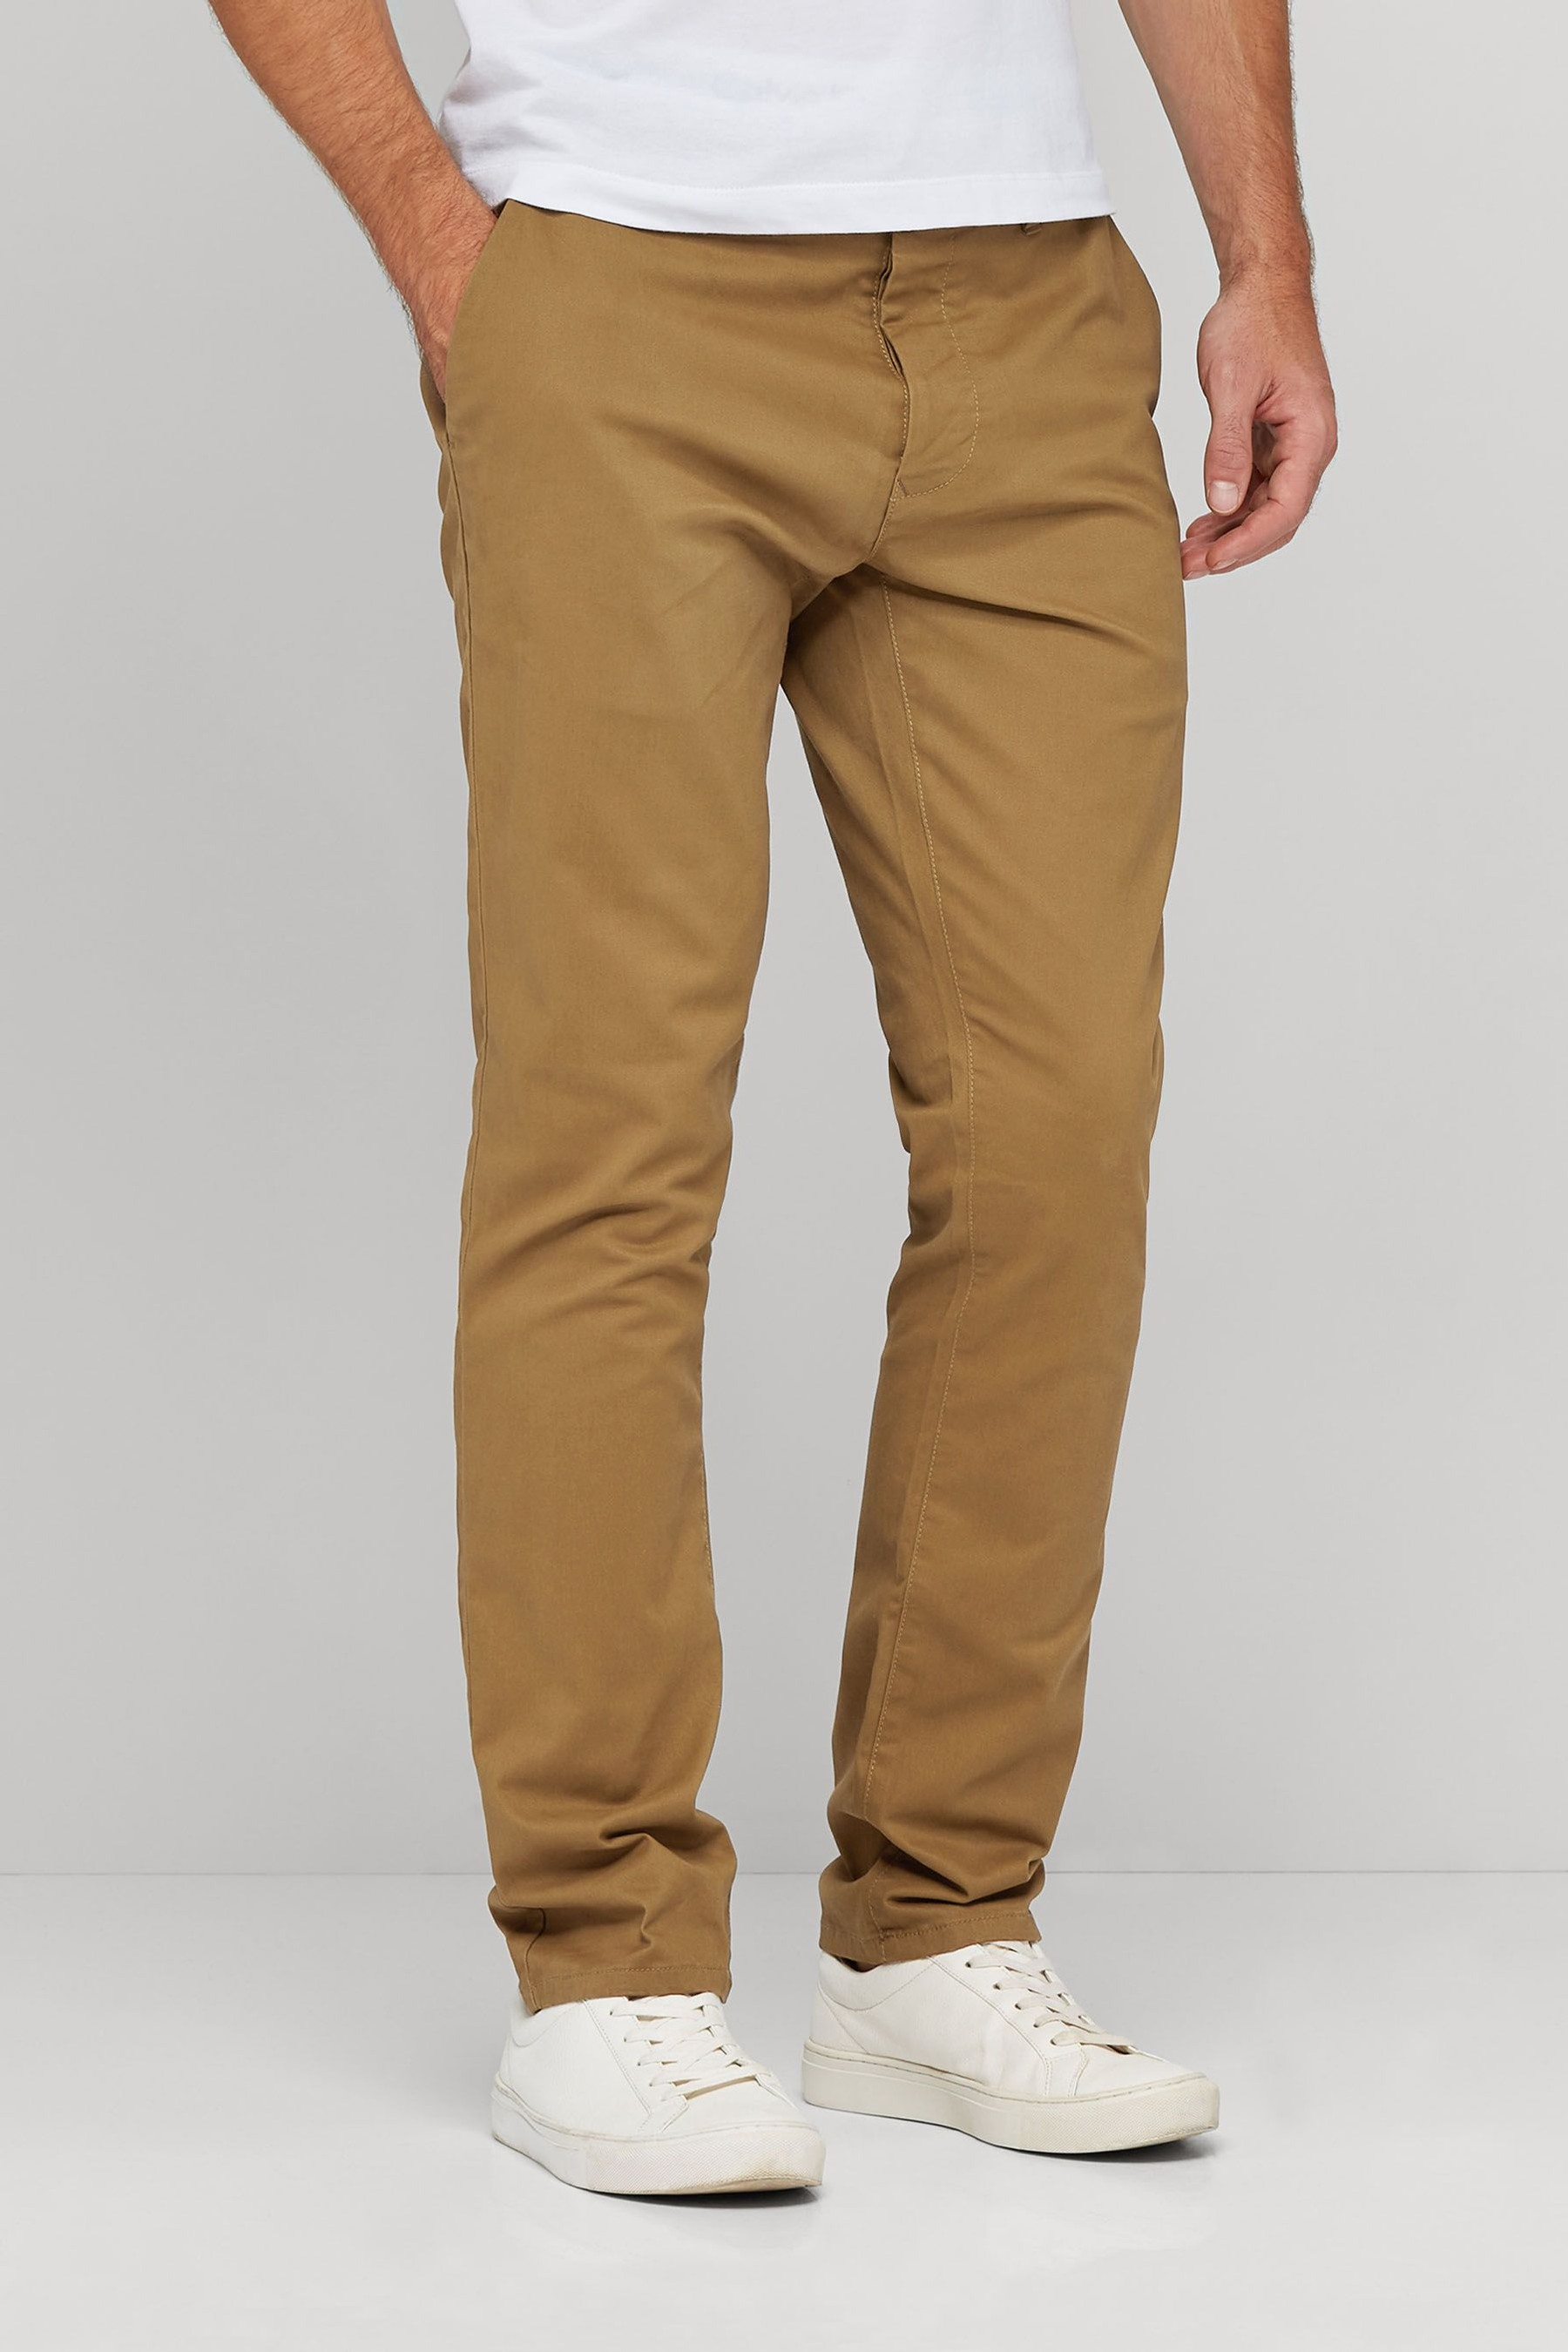 Shop Banana Republic's Aiden Slim Rapid Movement Chino: Rapid Movement Chinos: Tailored performance chinos designed to do more. Engineered with stretch for a comfortable fit that keeps its shape, with added water and stain resistant properties.,Front coin and off-seam pockets. Rear buttoned welt pockets.,Zip fly with hook-and-bar closure.,Belt loops.